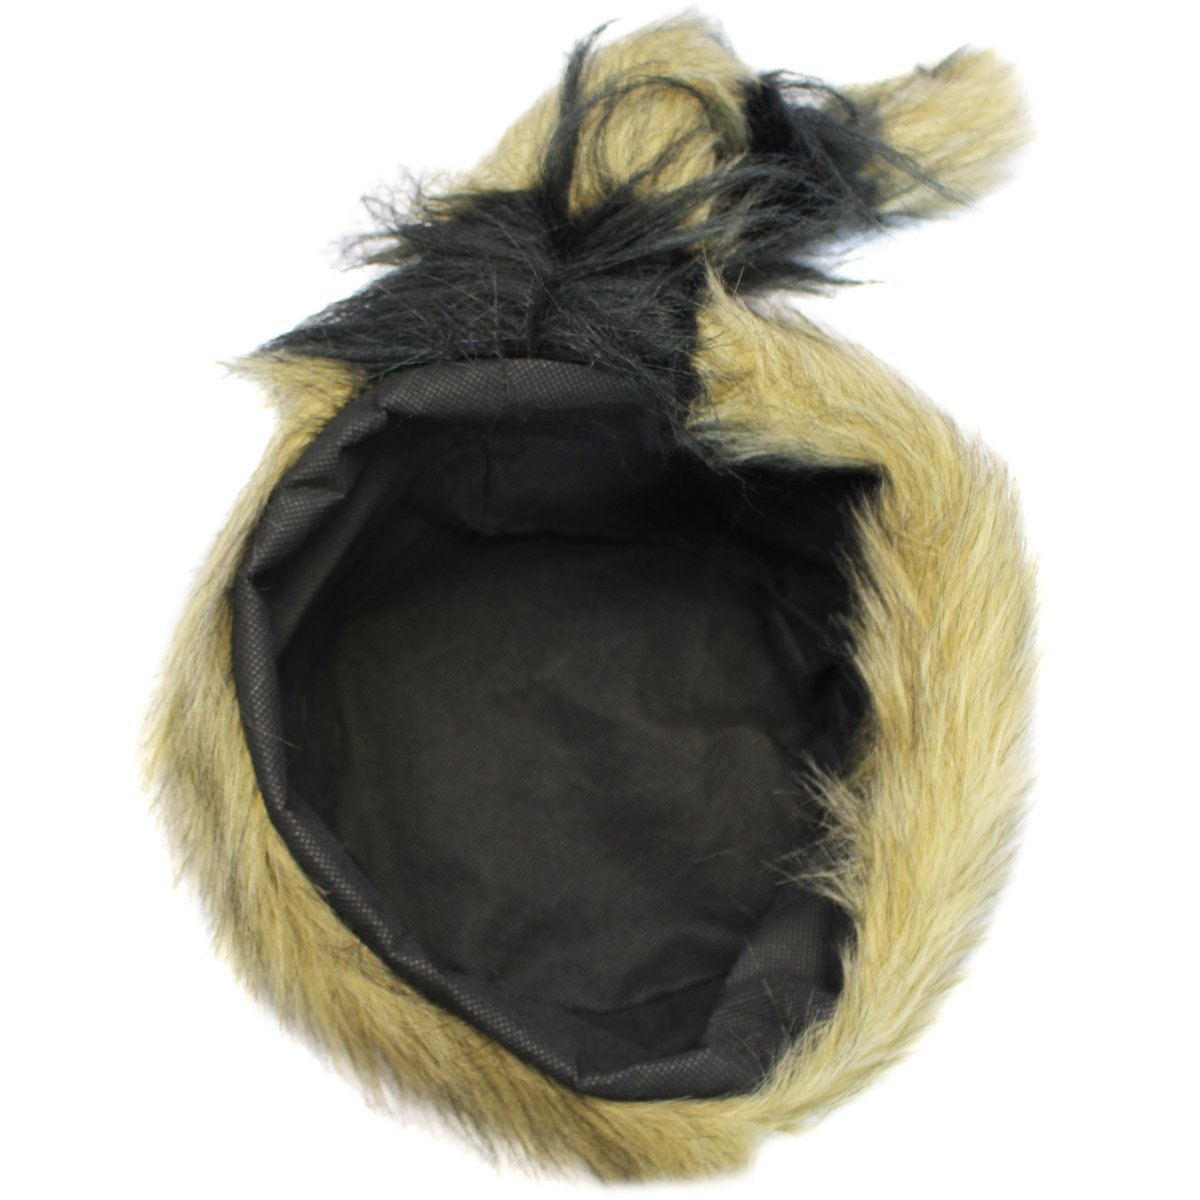 e5fd8125c65 Coonskin Cap - Daniel Boone Hat Raccoon Tail Hats Novelty Hat by Funny  Party Hats